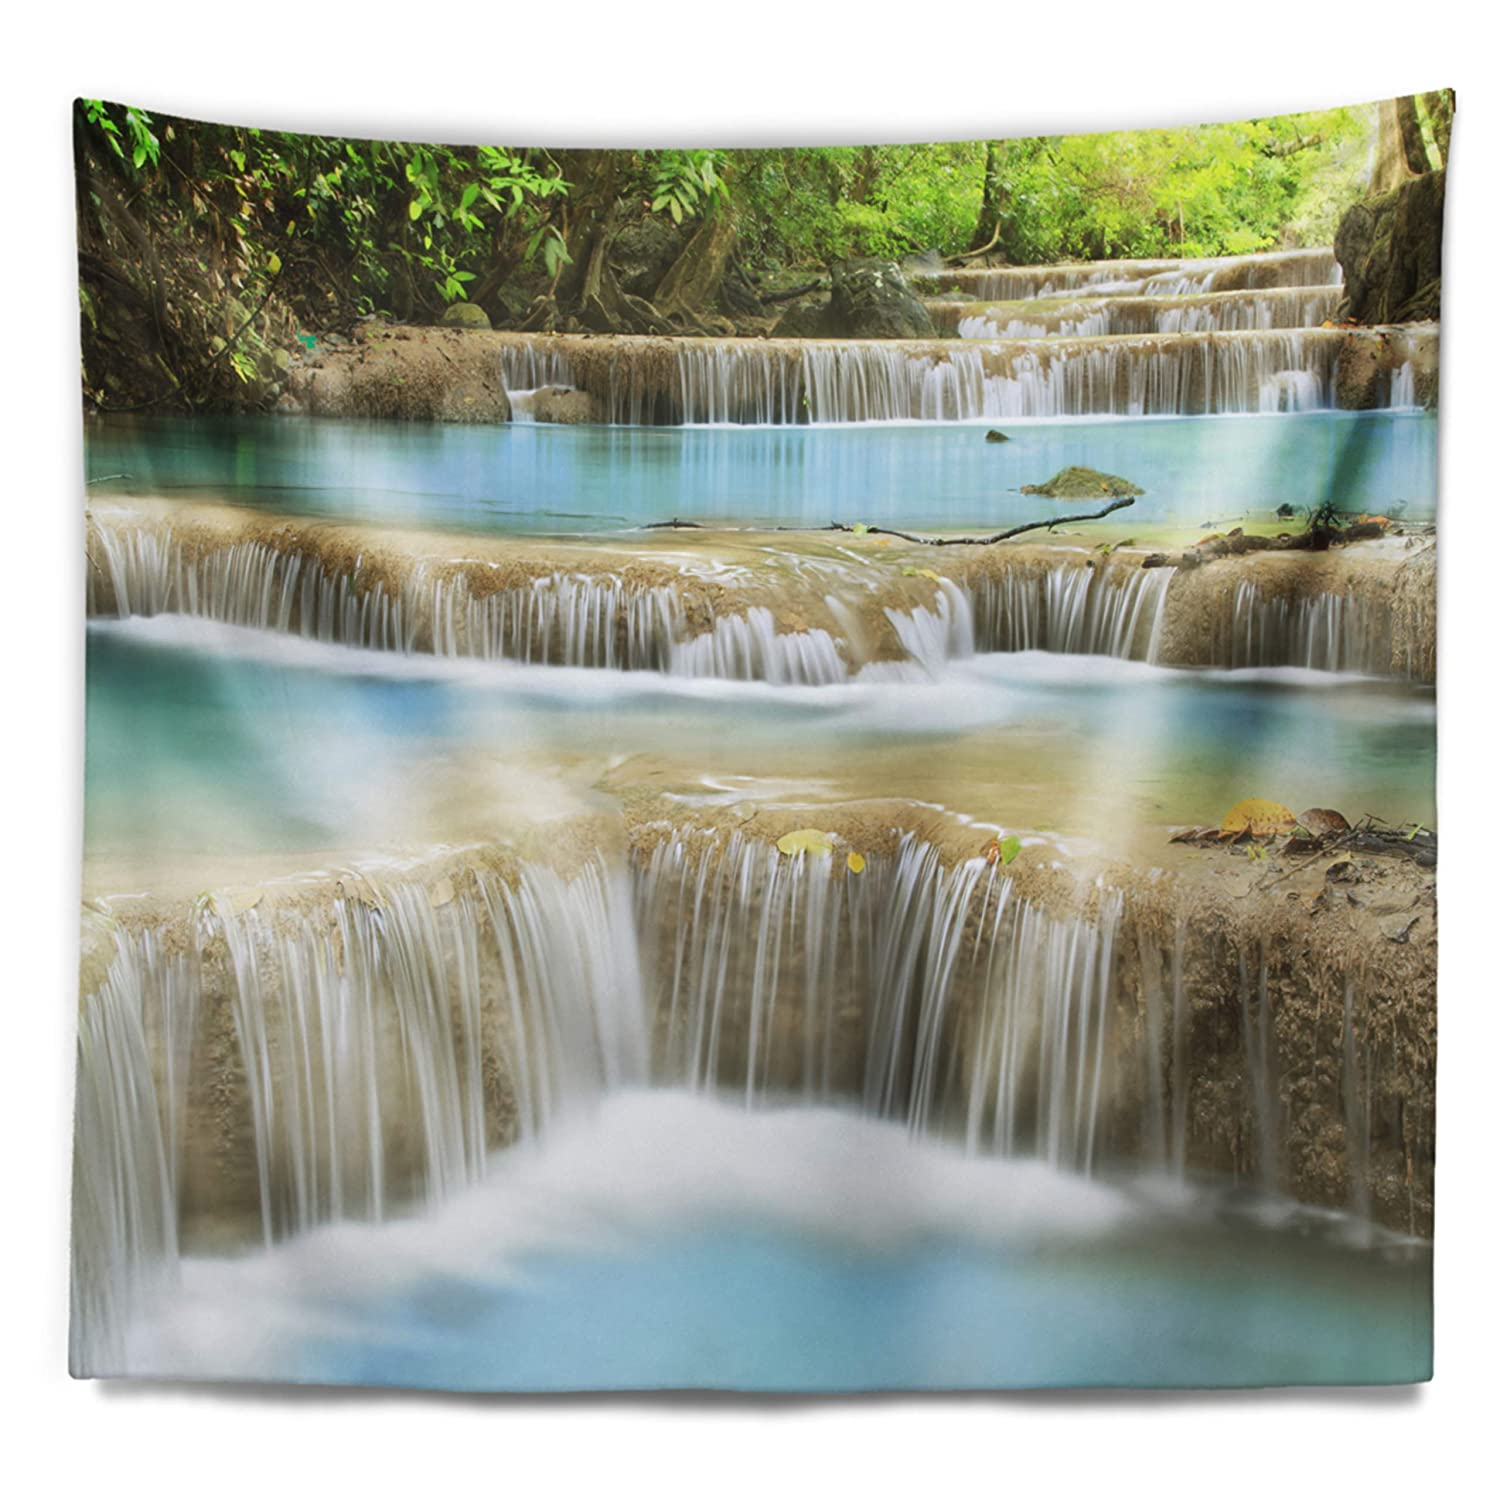 Designart Tap7097 60 50 Blue Erawan Waterfall Landscape Photography Blanket Décor Art For Home And Office Wall Tapestry Large 60 In X 50 In Created On Lightweight Polyester Fabric Home Décor Home Kitchen